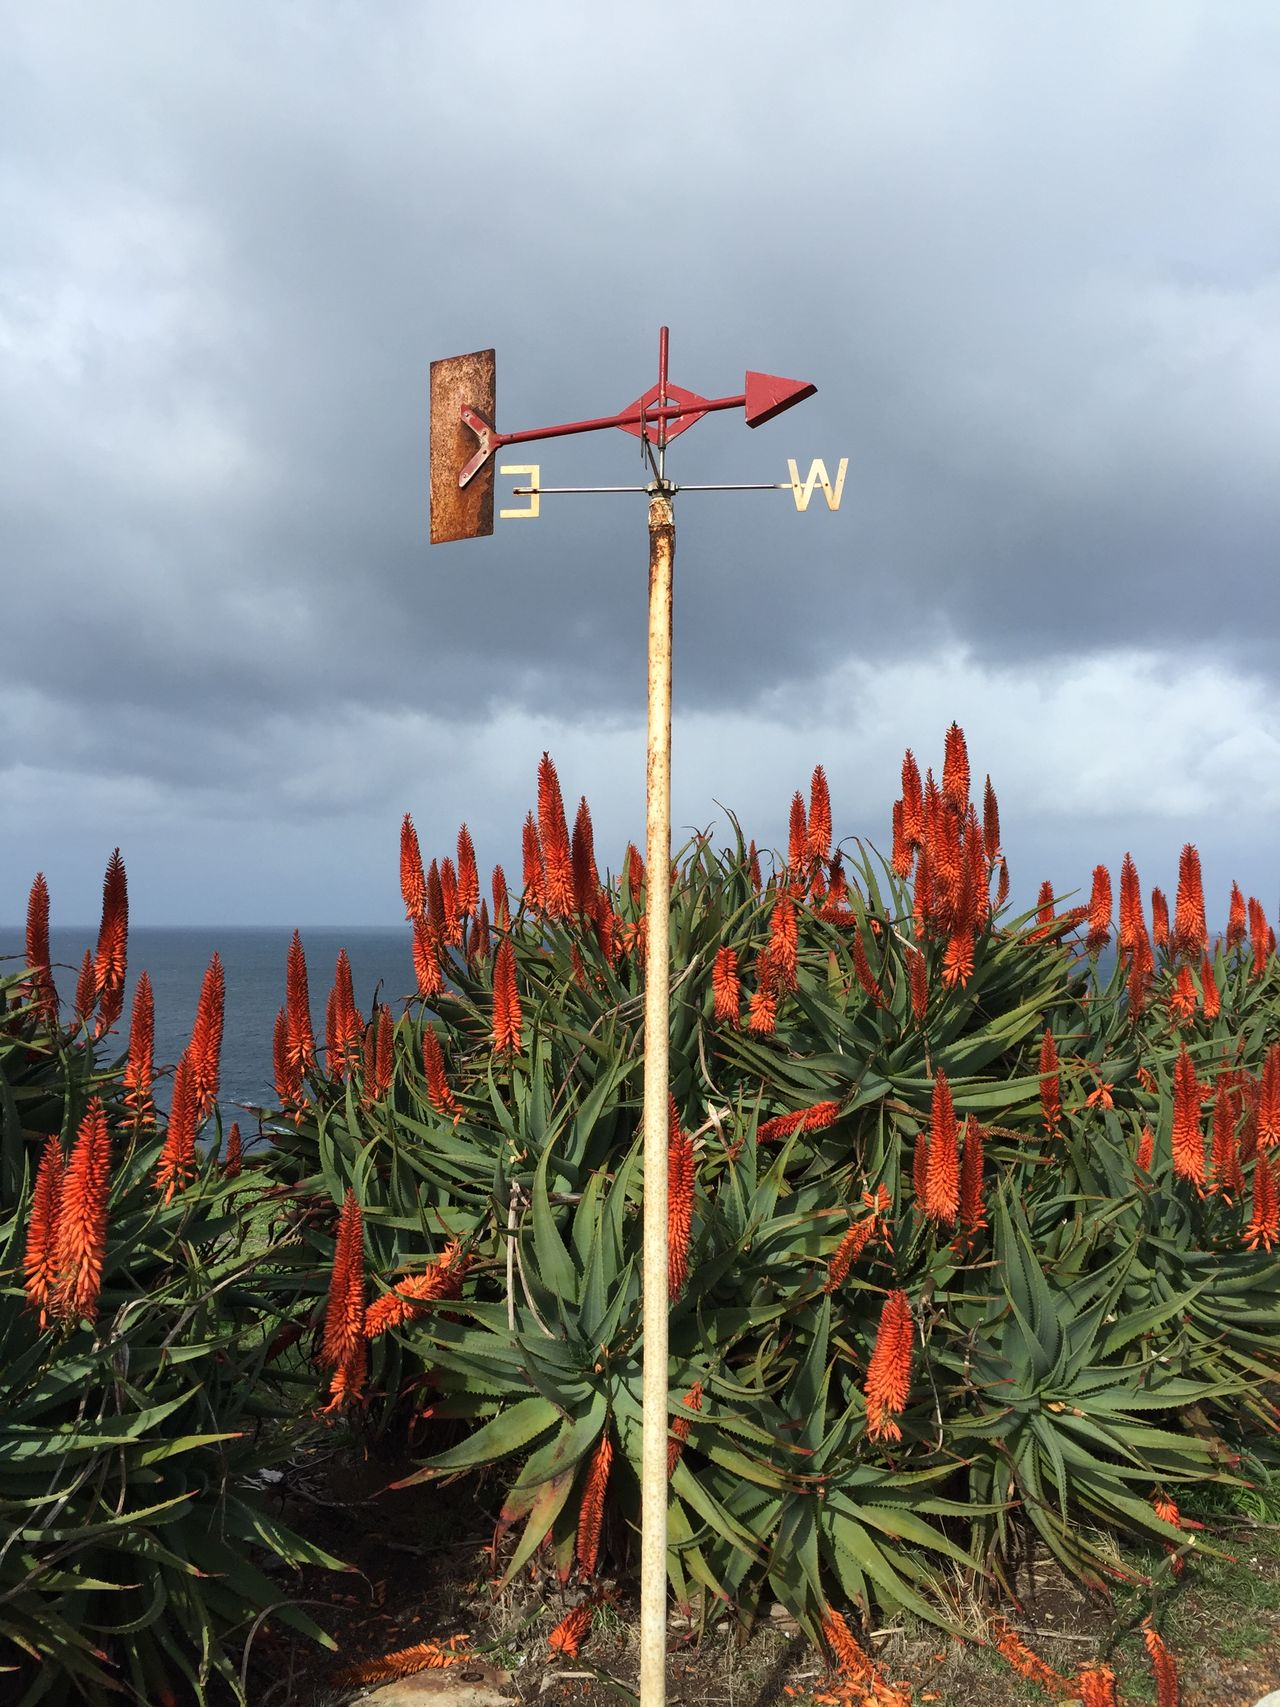 Where does the wind blow? Anemometer Beauty In Nature Cloud - Sky Nature No People Outdoors Sky Tranquil Scene